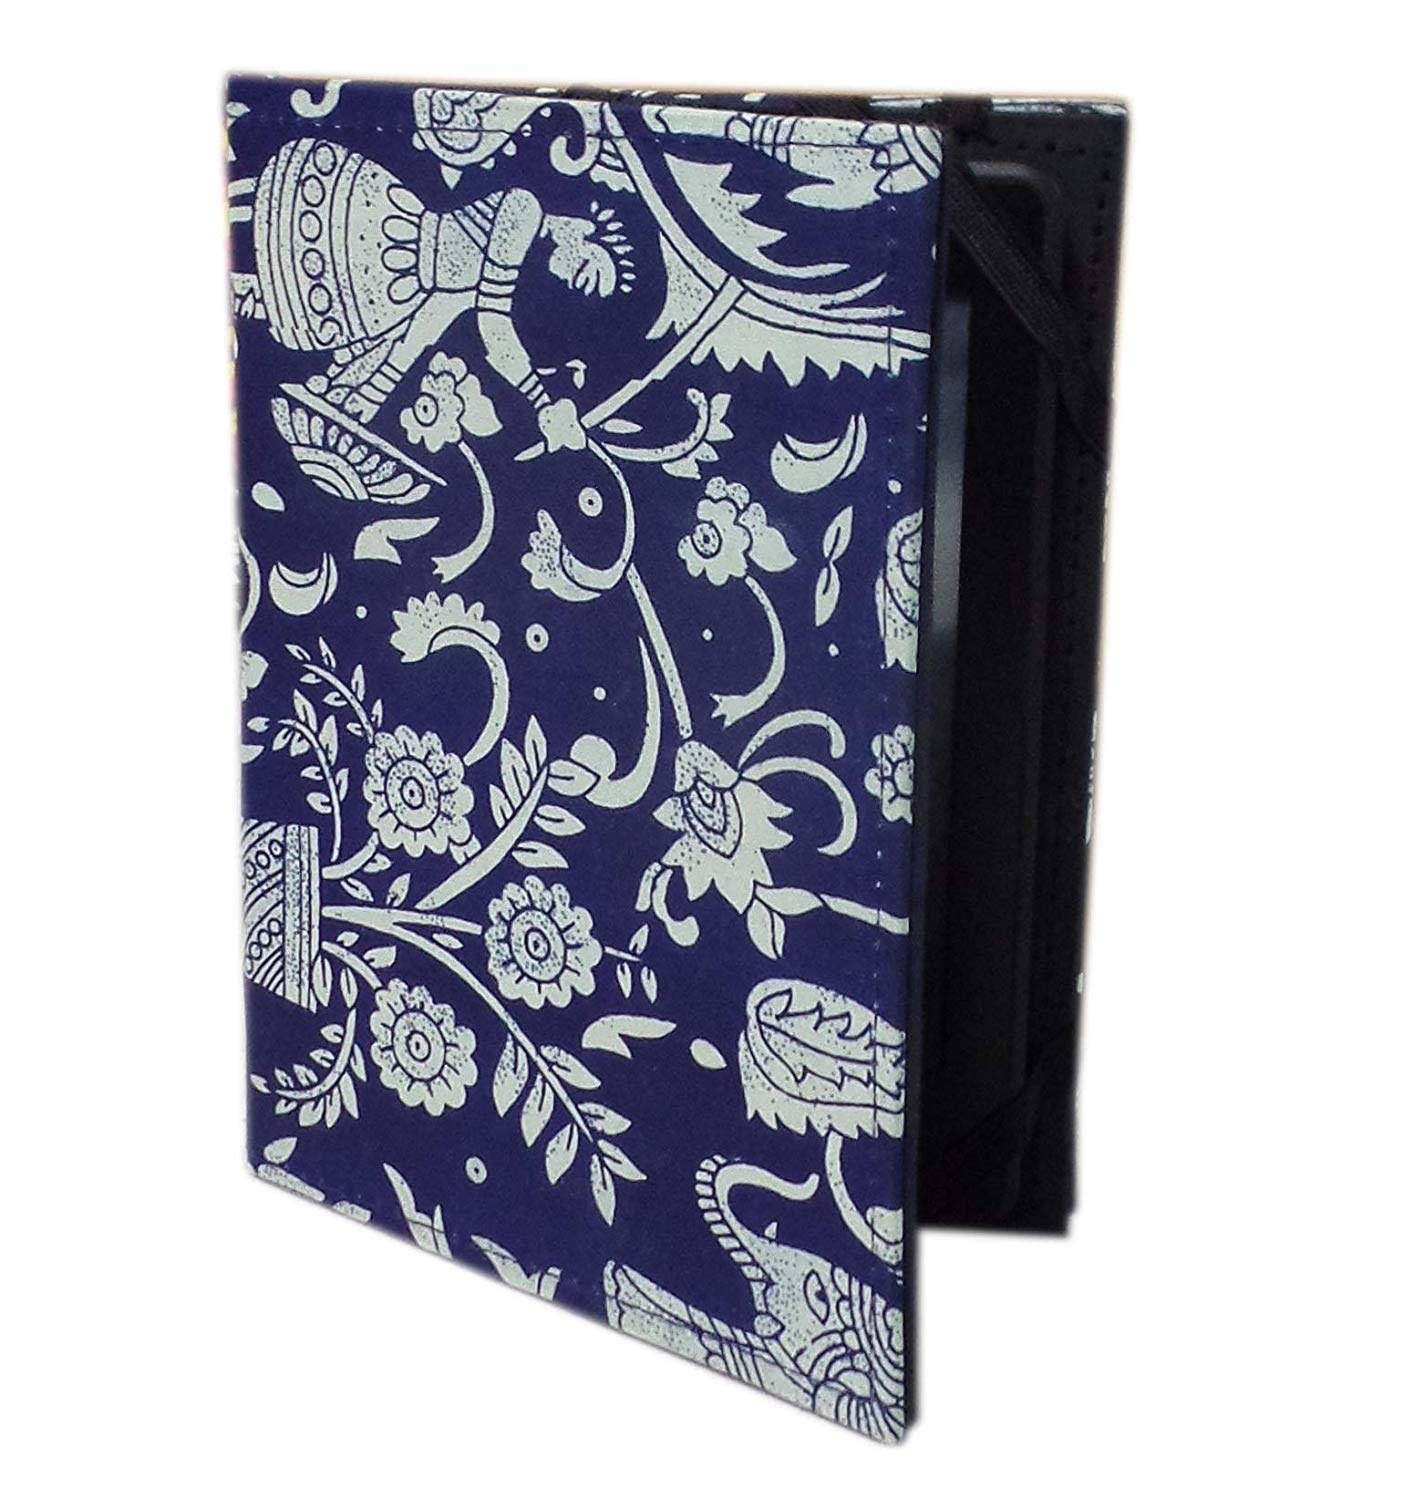 A Kindle with blue book cover on it.